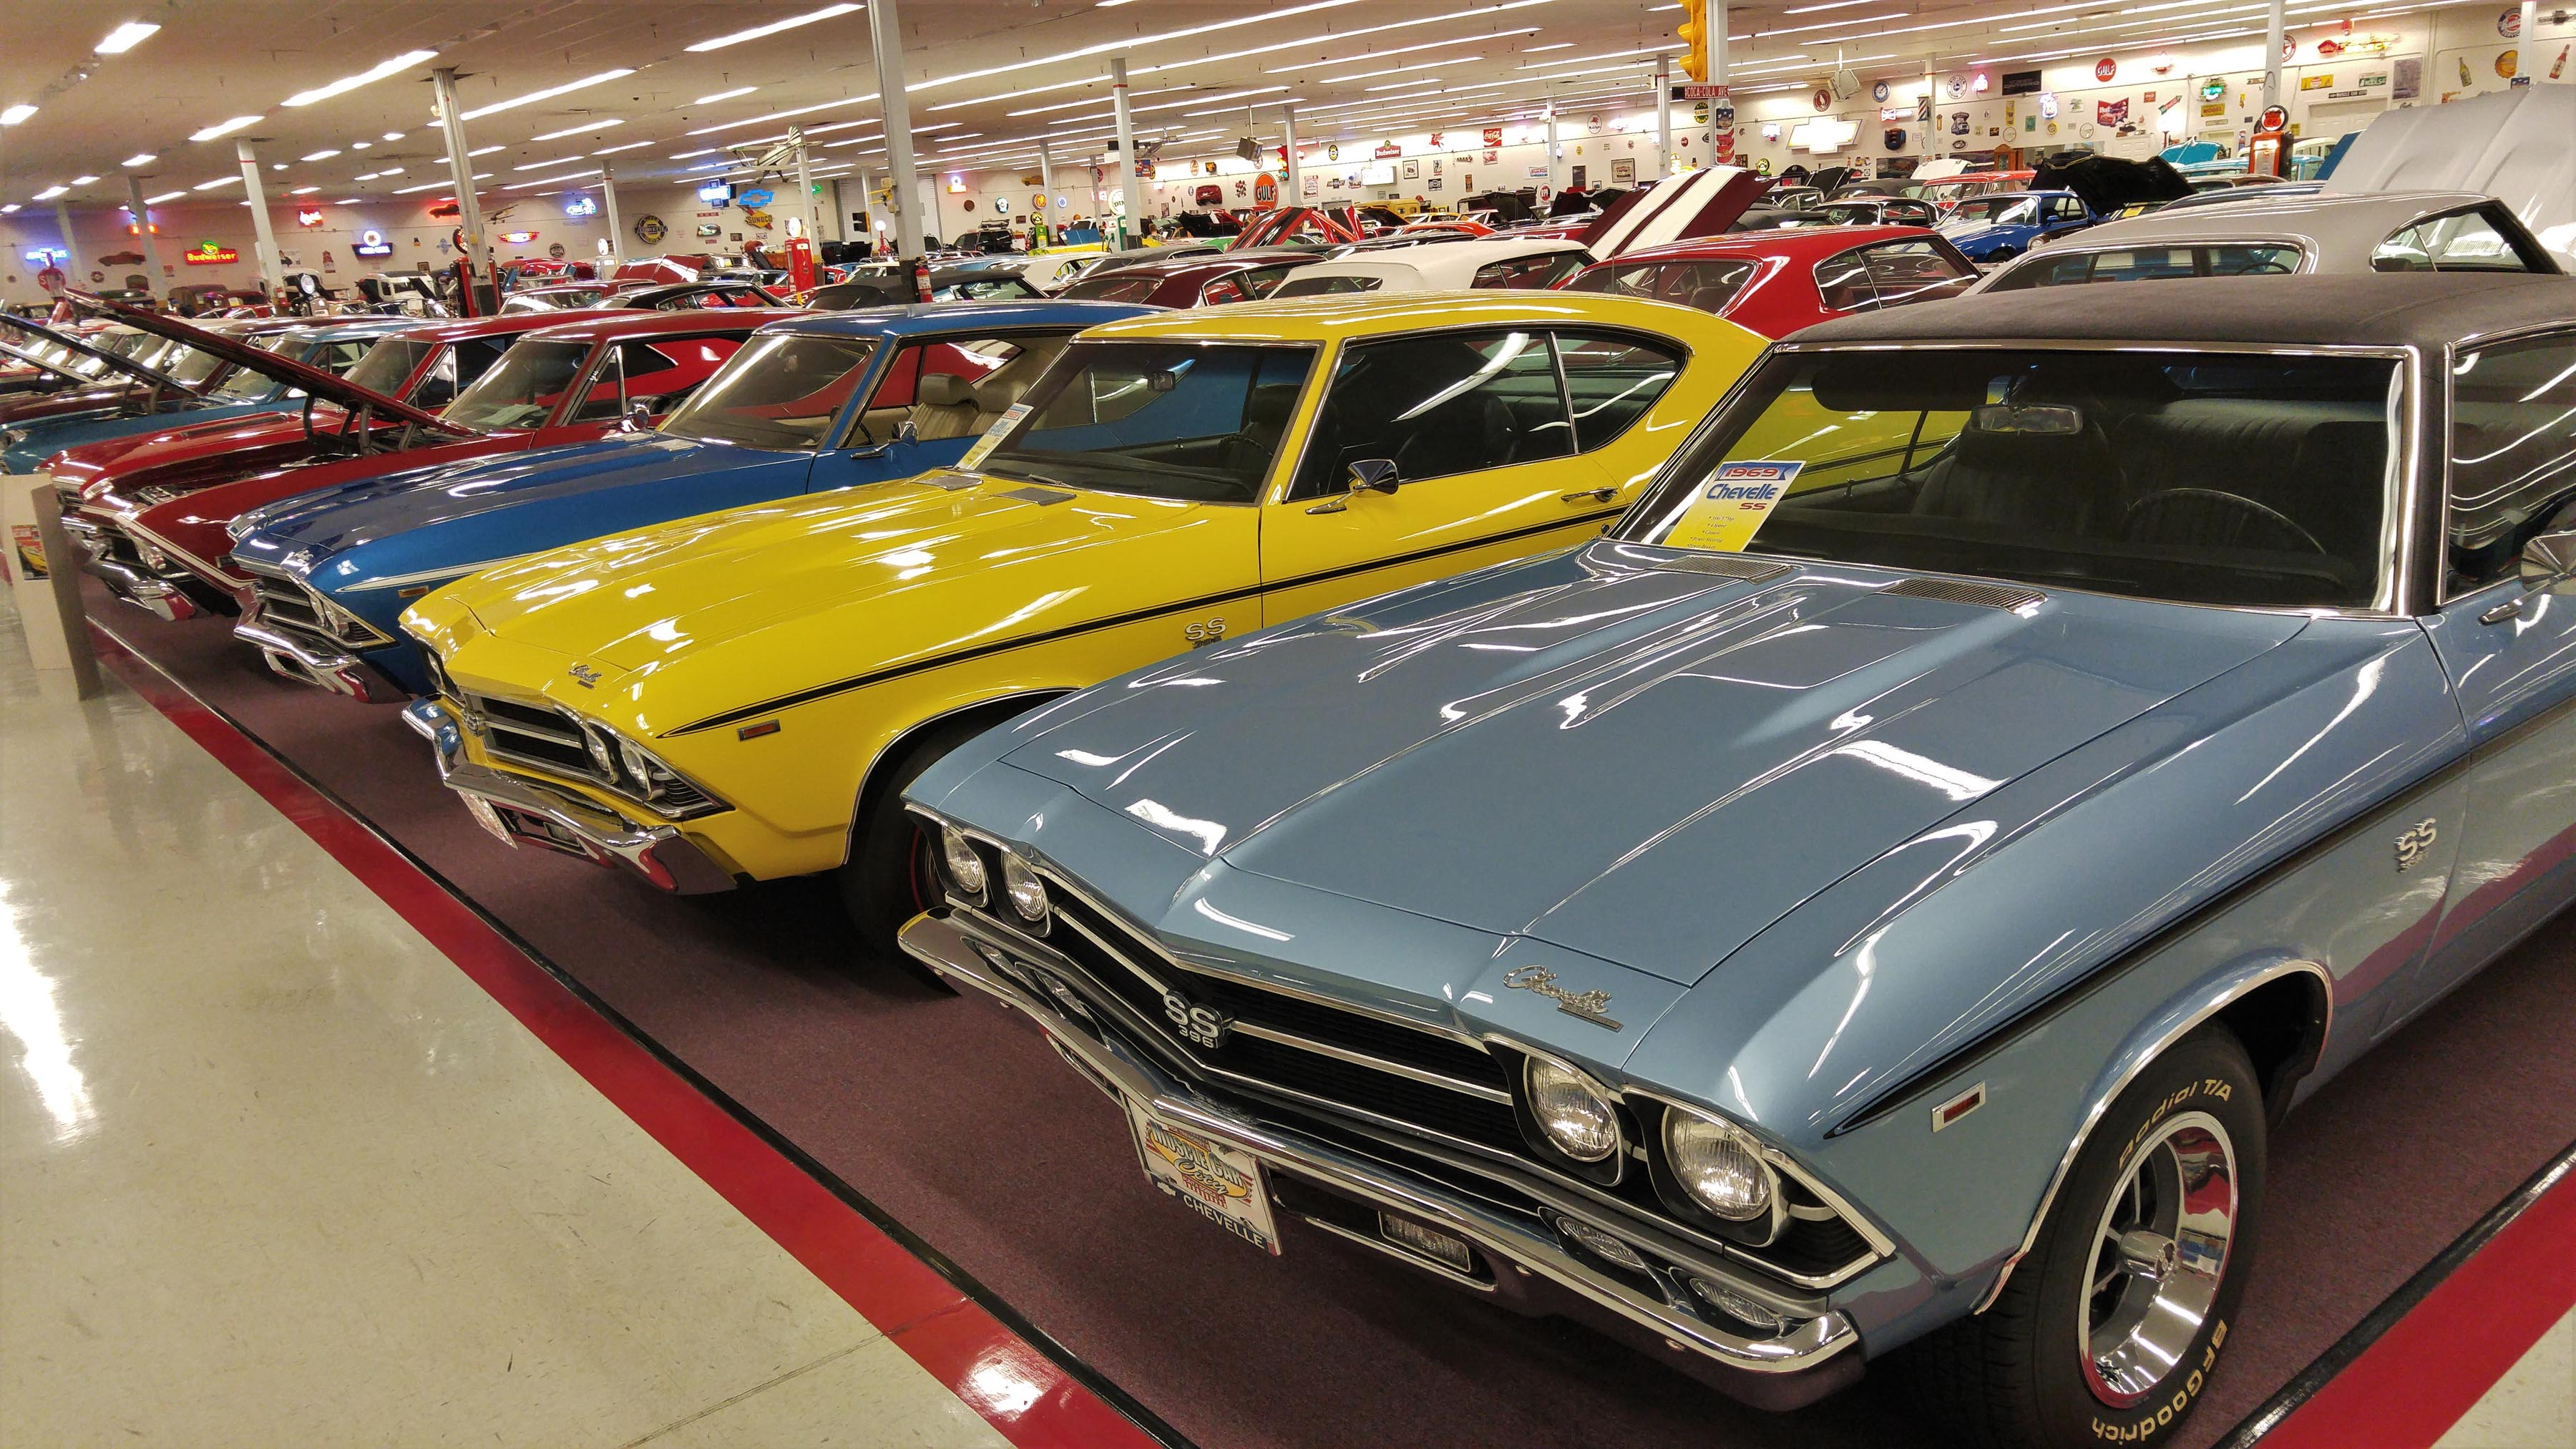 Chevrolet Nirvana: Rick Treworgy's Muscle Car City